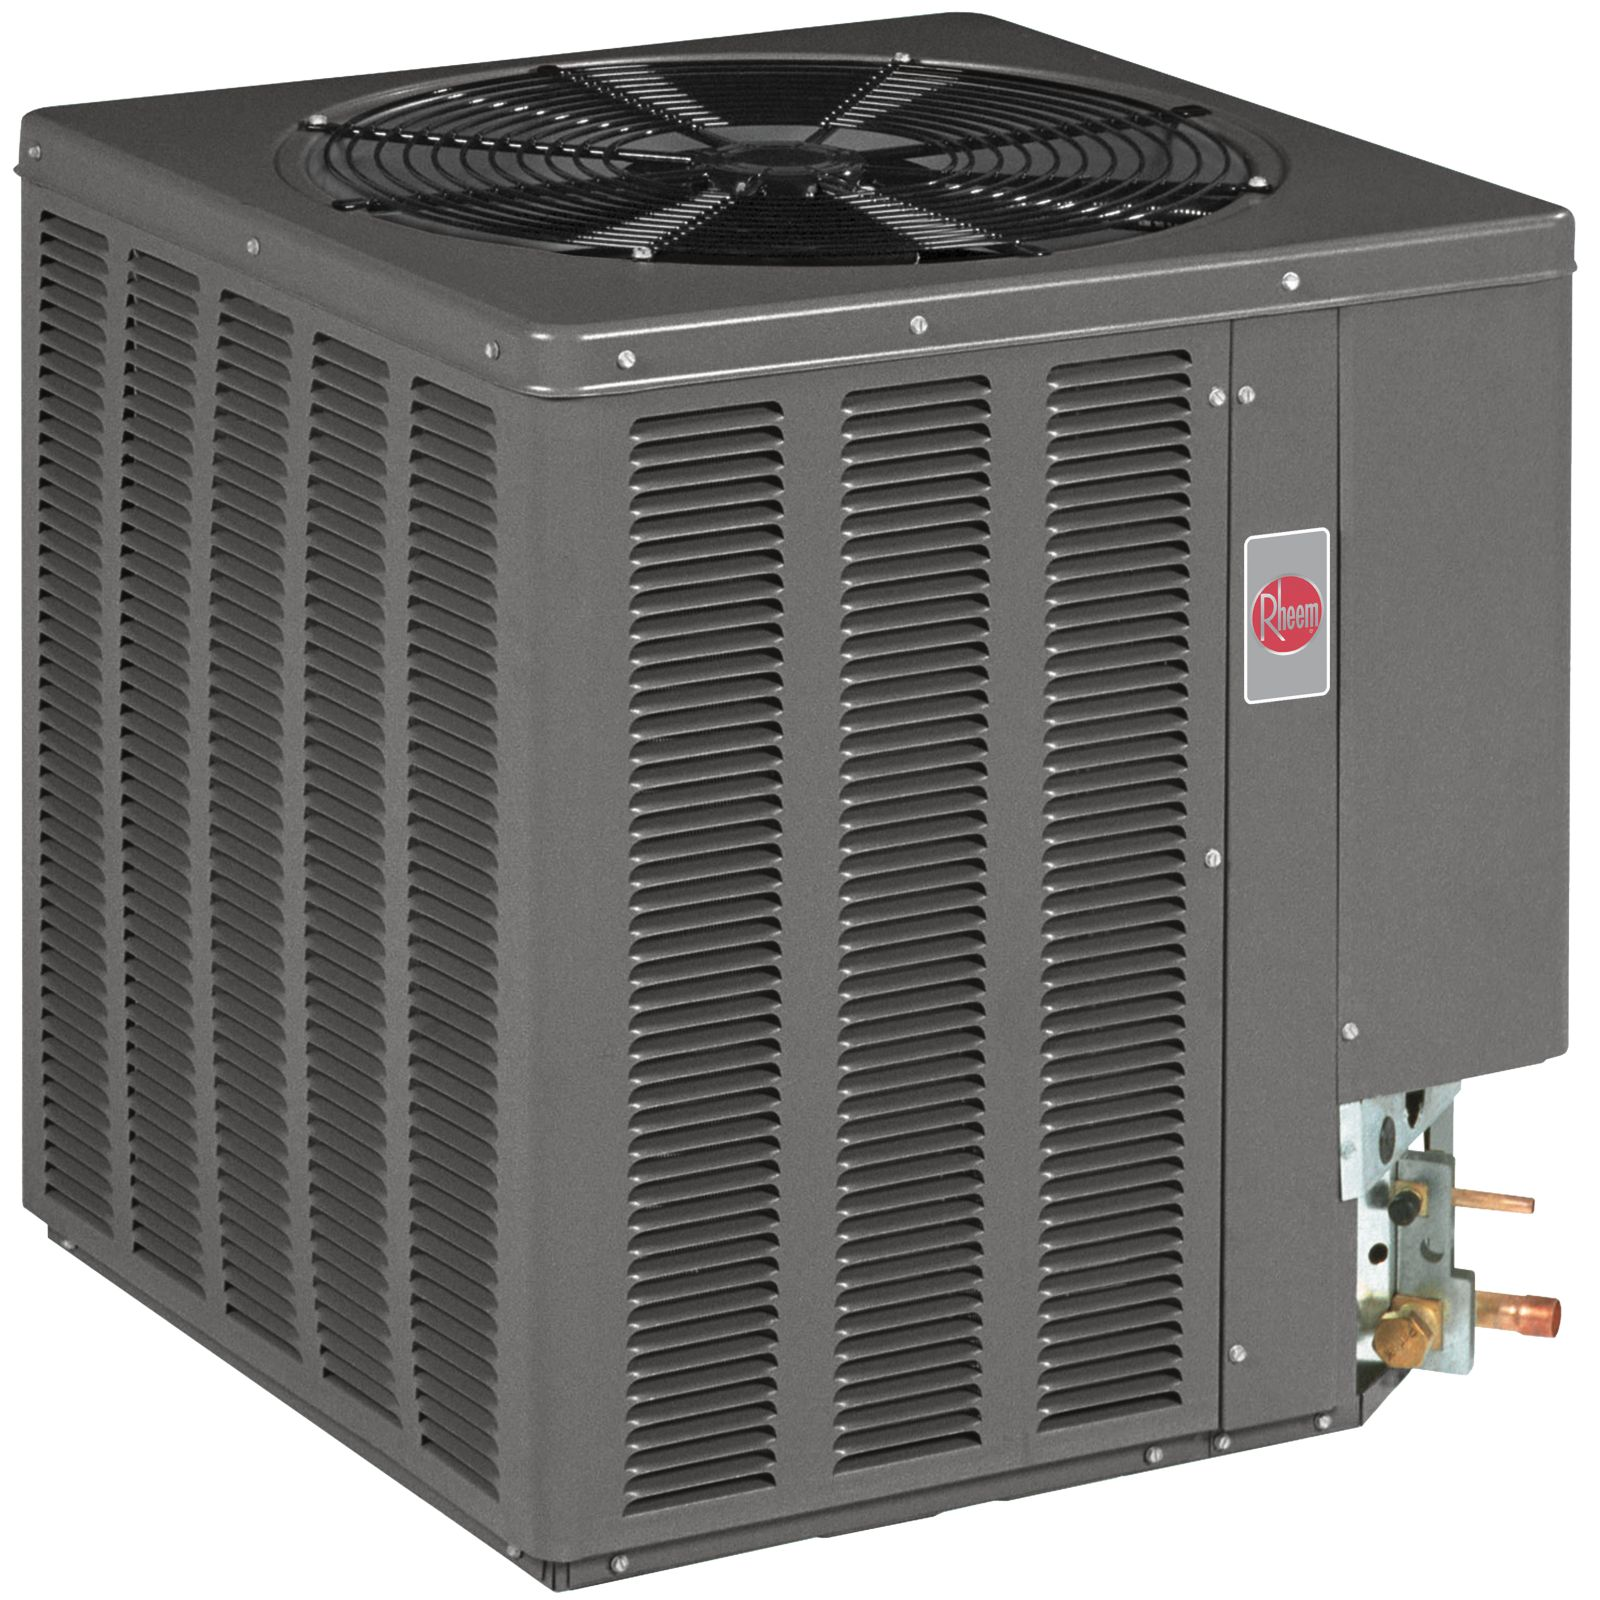 Rheem 14AJM19A01 - Value Series 1 1/2 Ton, 14 SEER, R410A Air Conditioner Condenser